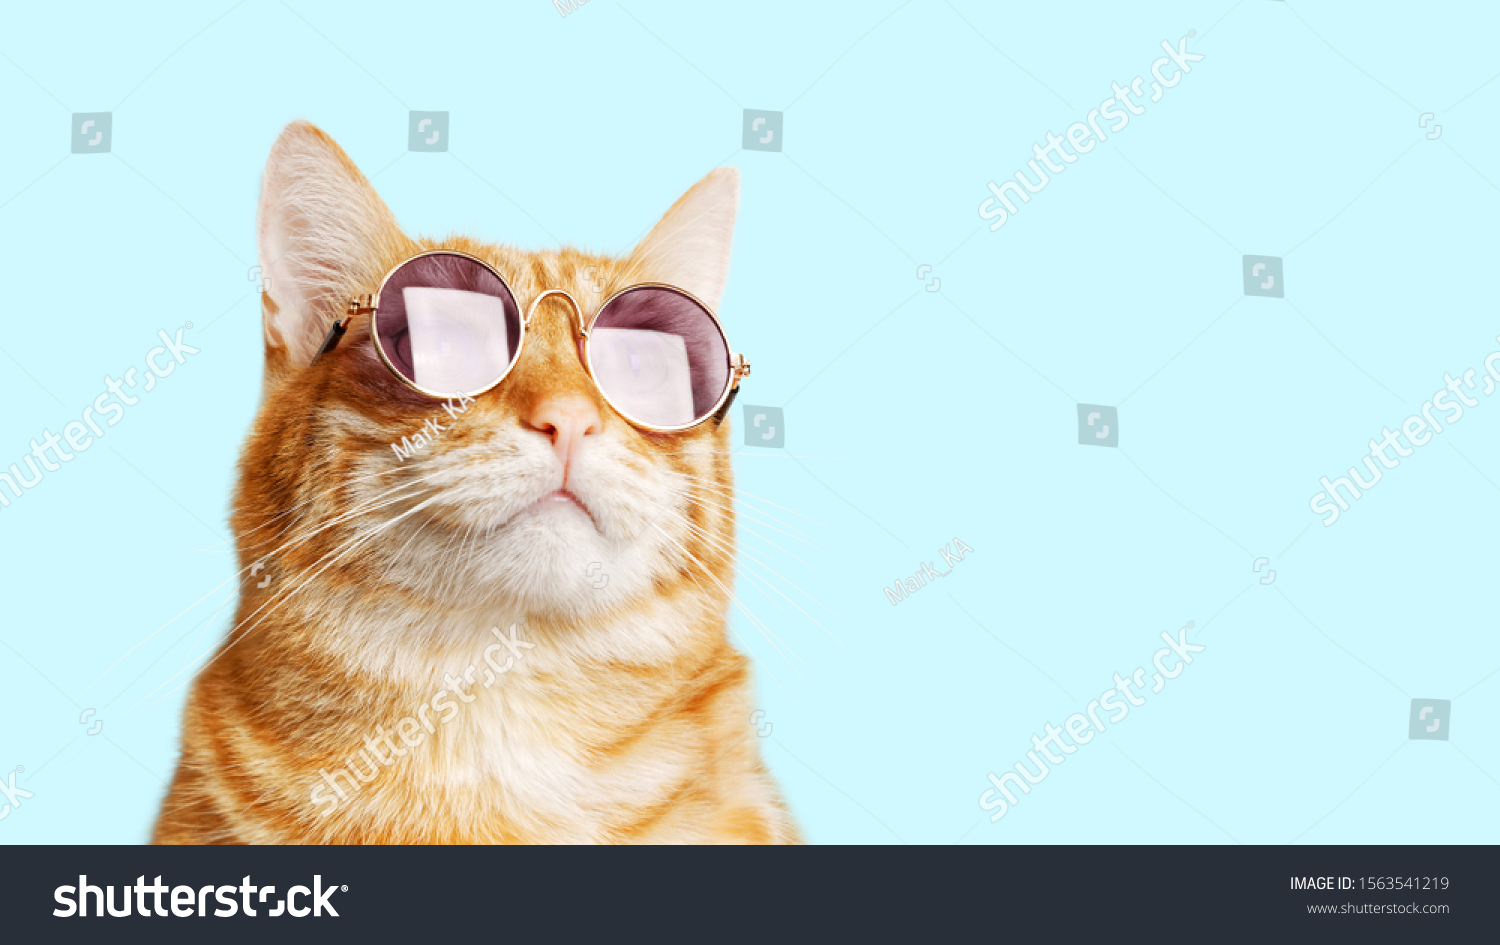 Closeup portrait of funny ginger cat wearing sunglasses isolated on light cyan. Copyspace. #1563541219